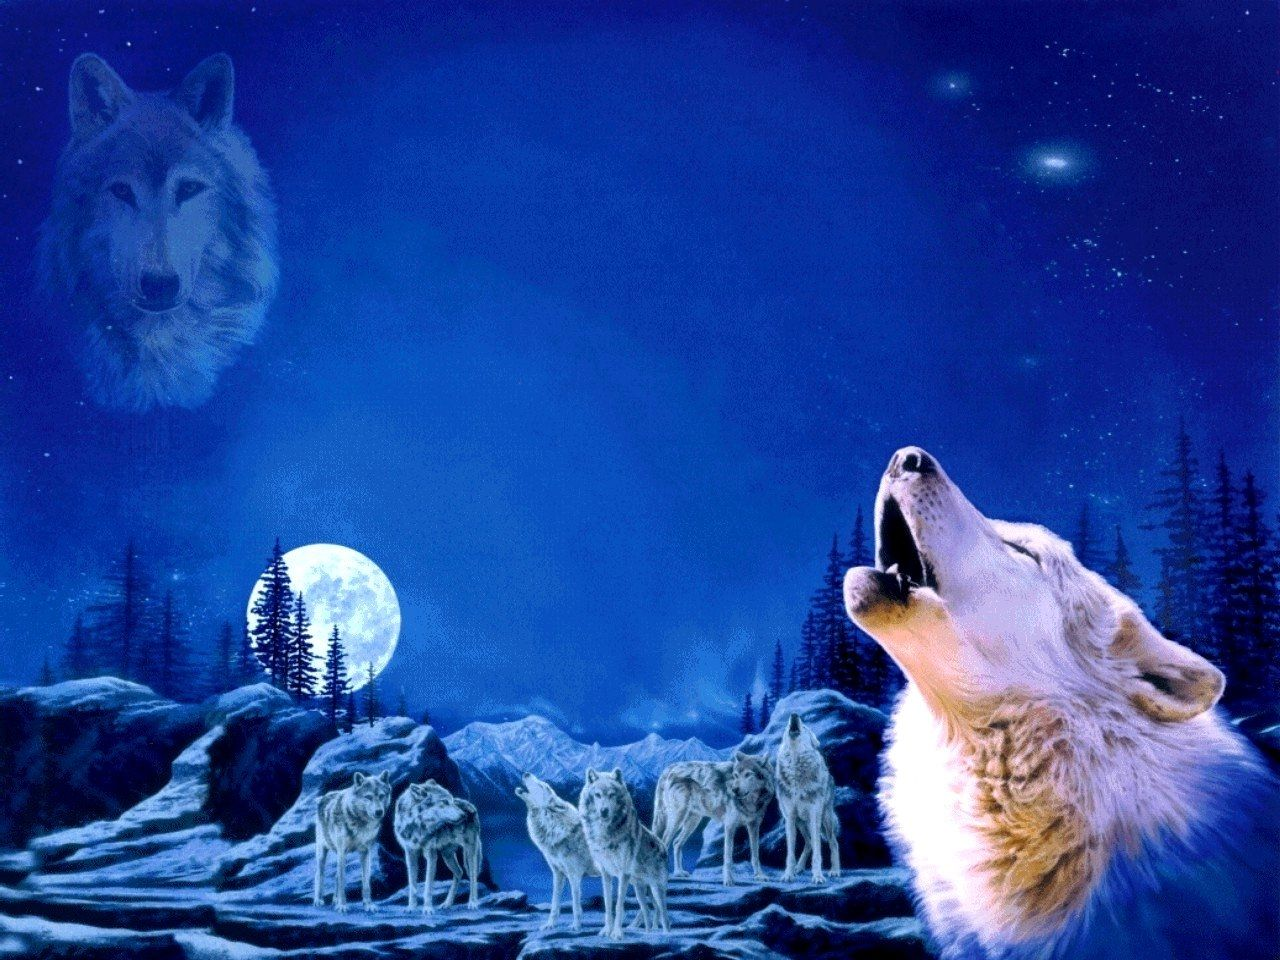 Anime Wolf Pack WOLF PACK Wallpaper The beautiful and